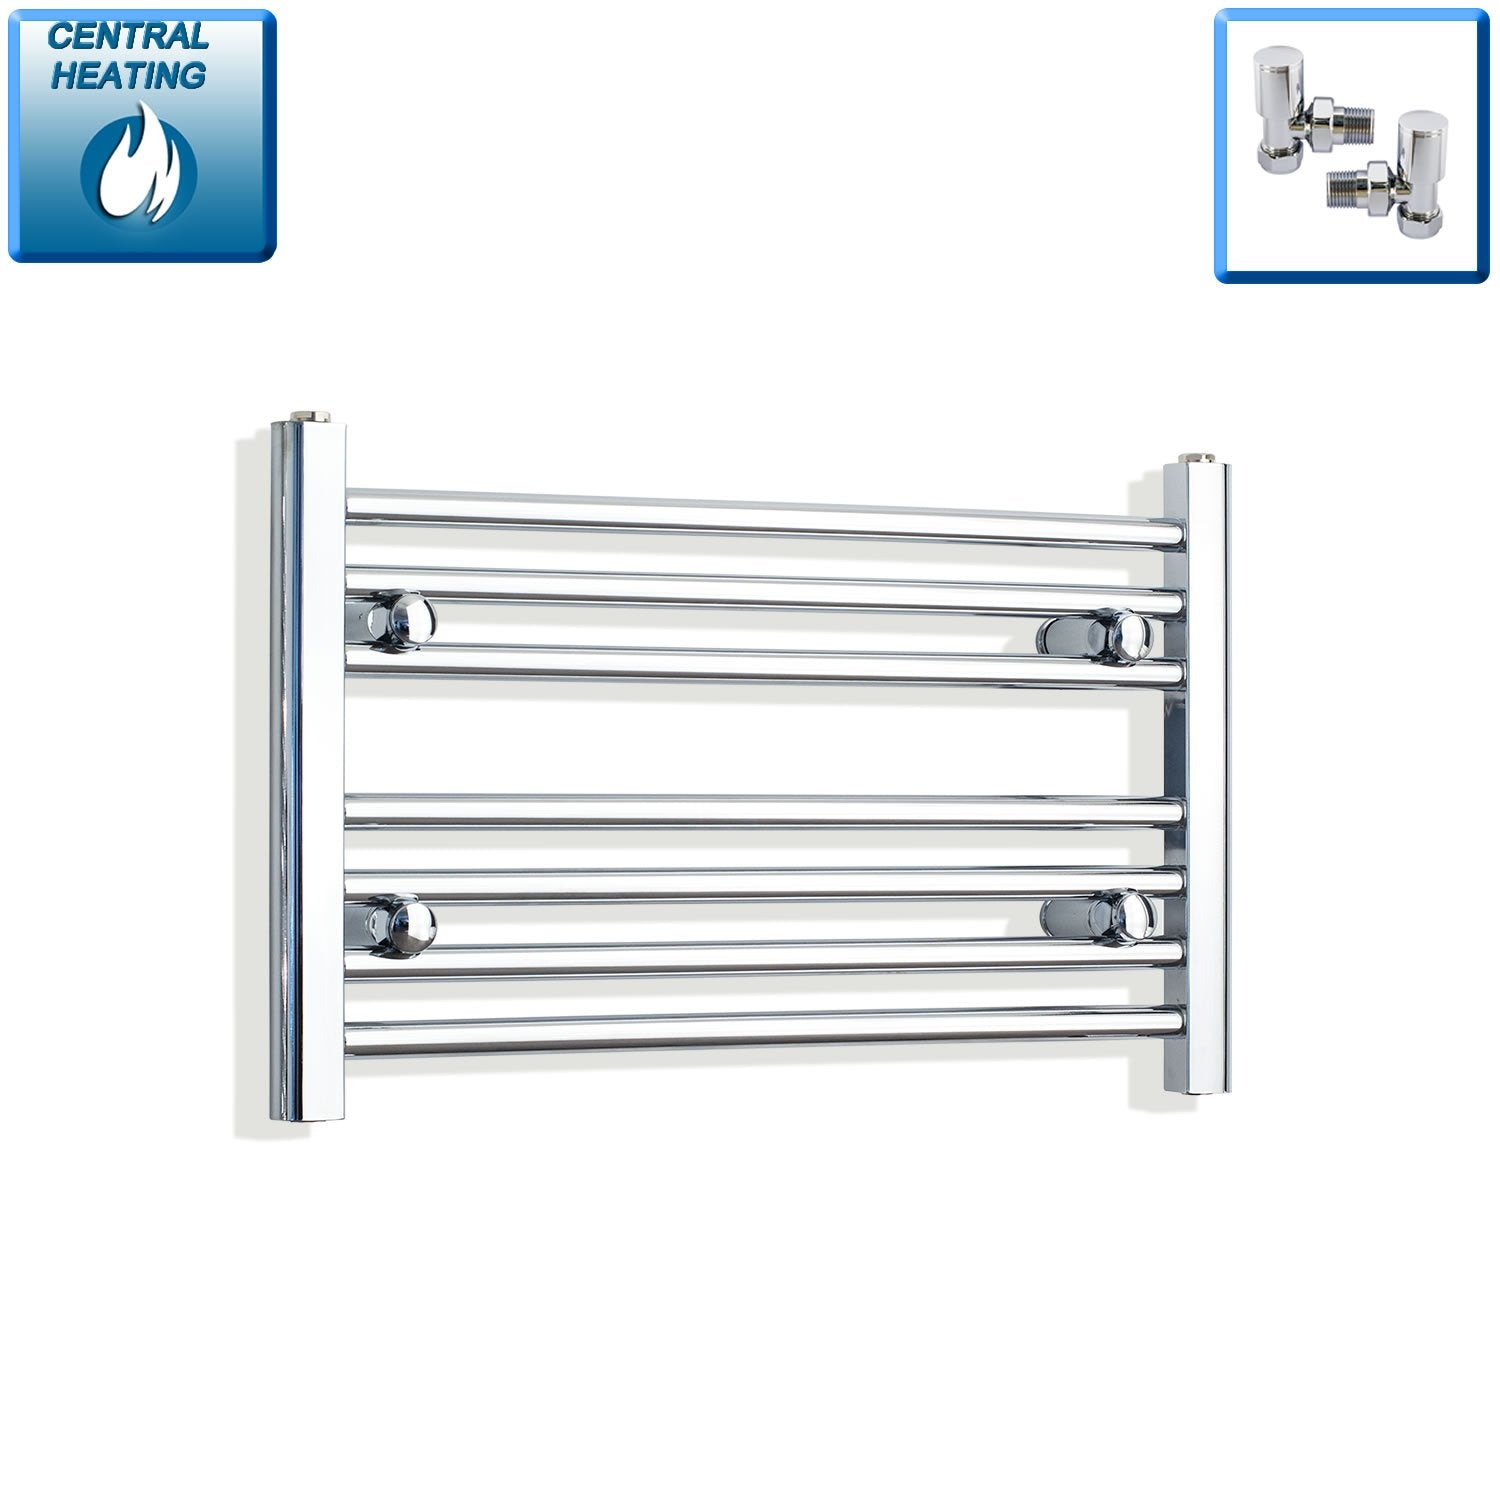 700mm Wide 400mm High Flat Chrome Heated Towel Rail Radiator HTR,With Angled Valve